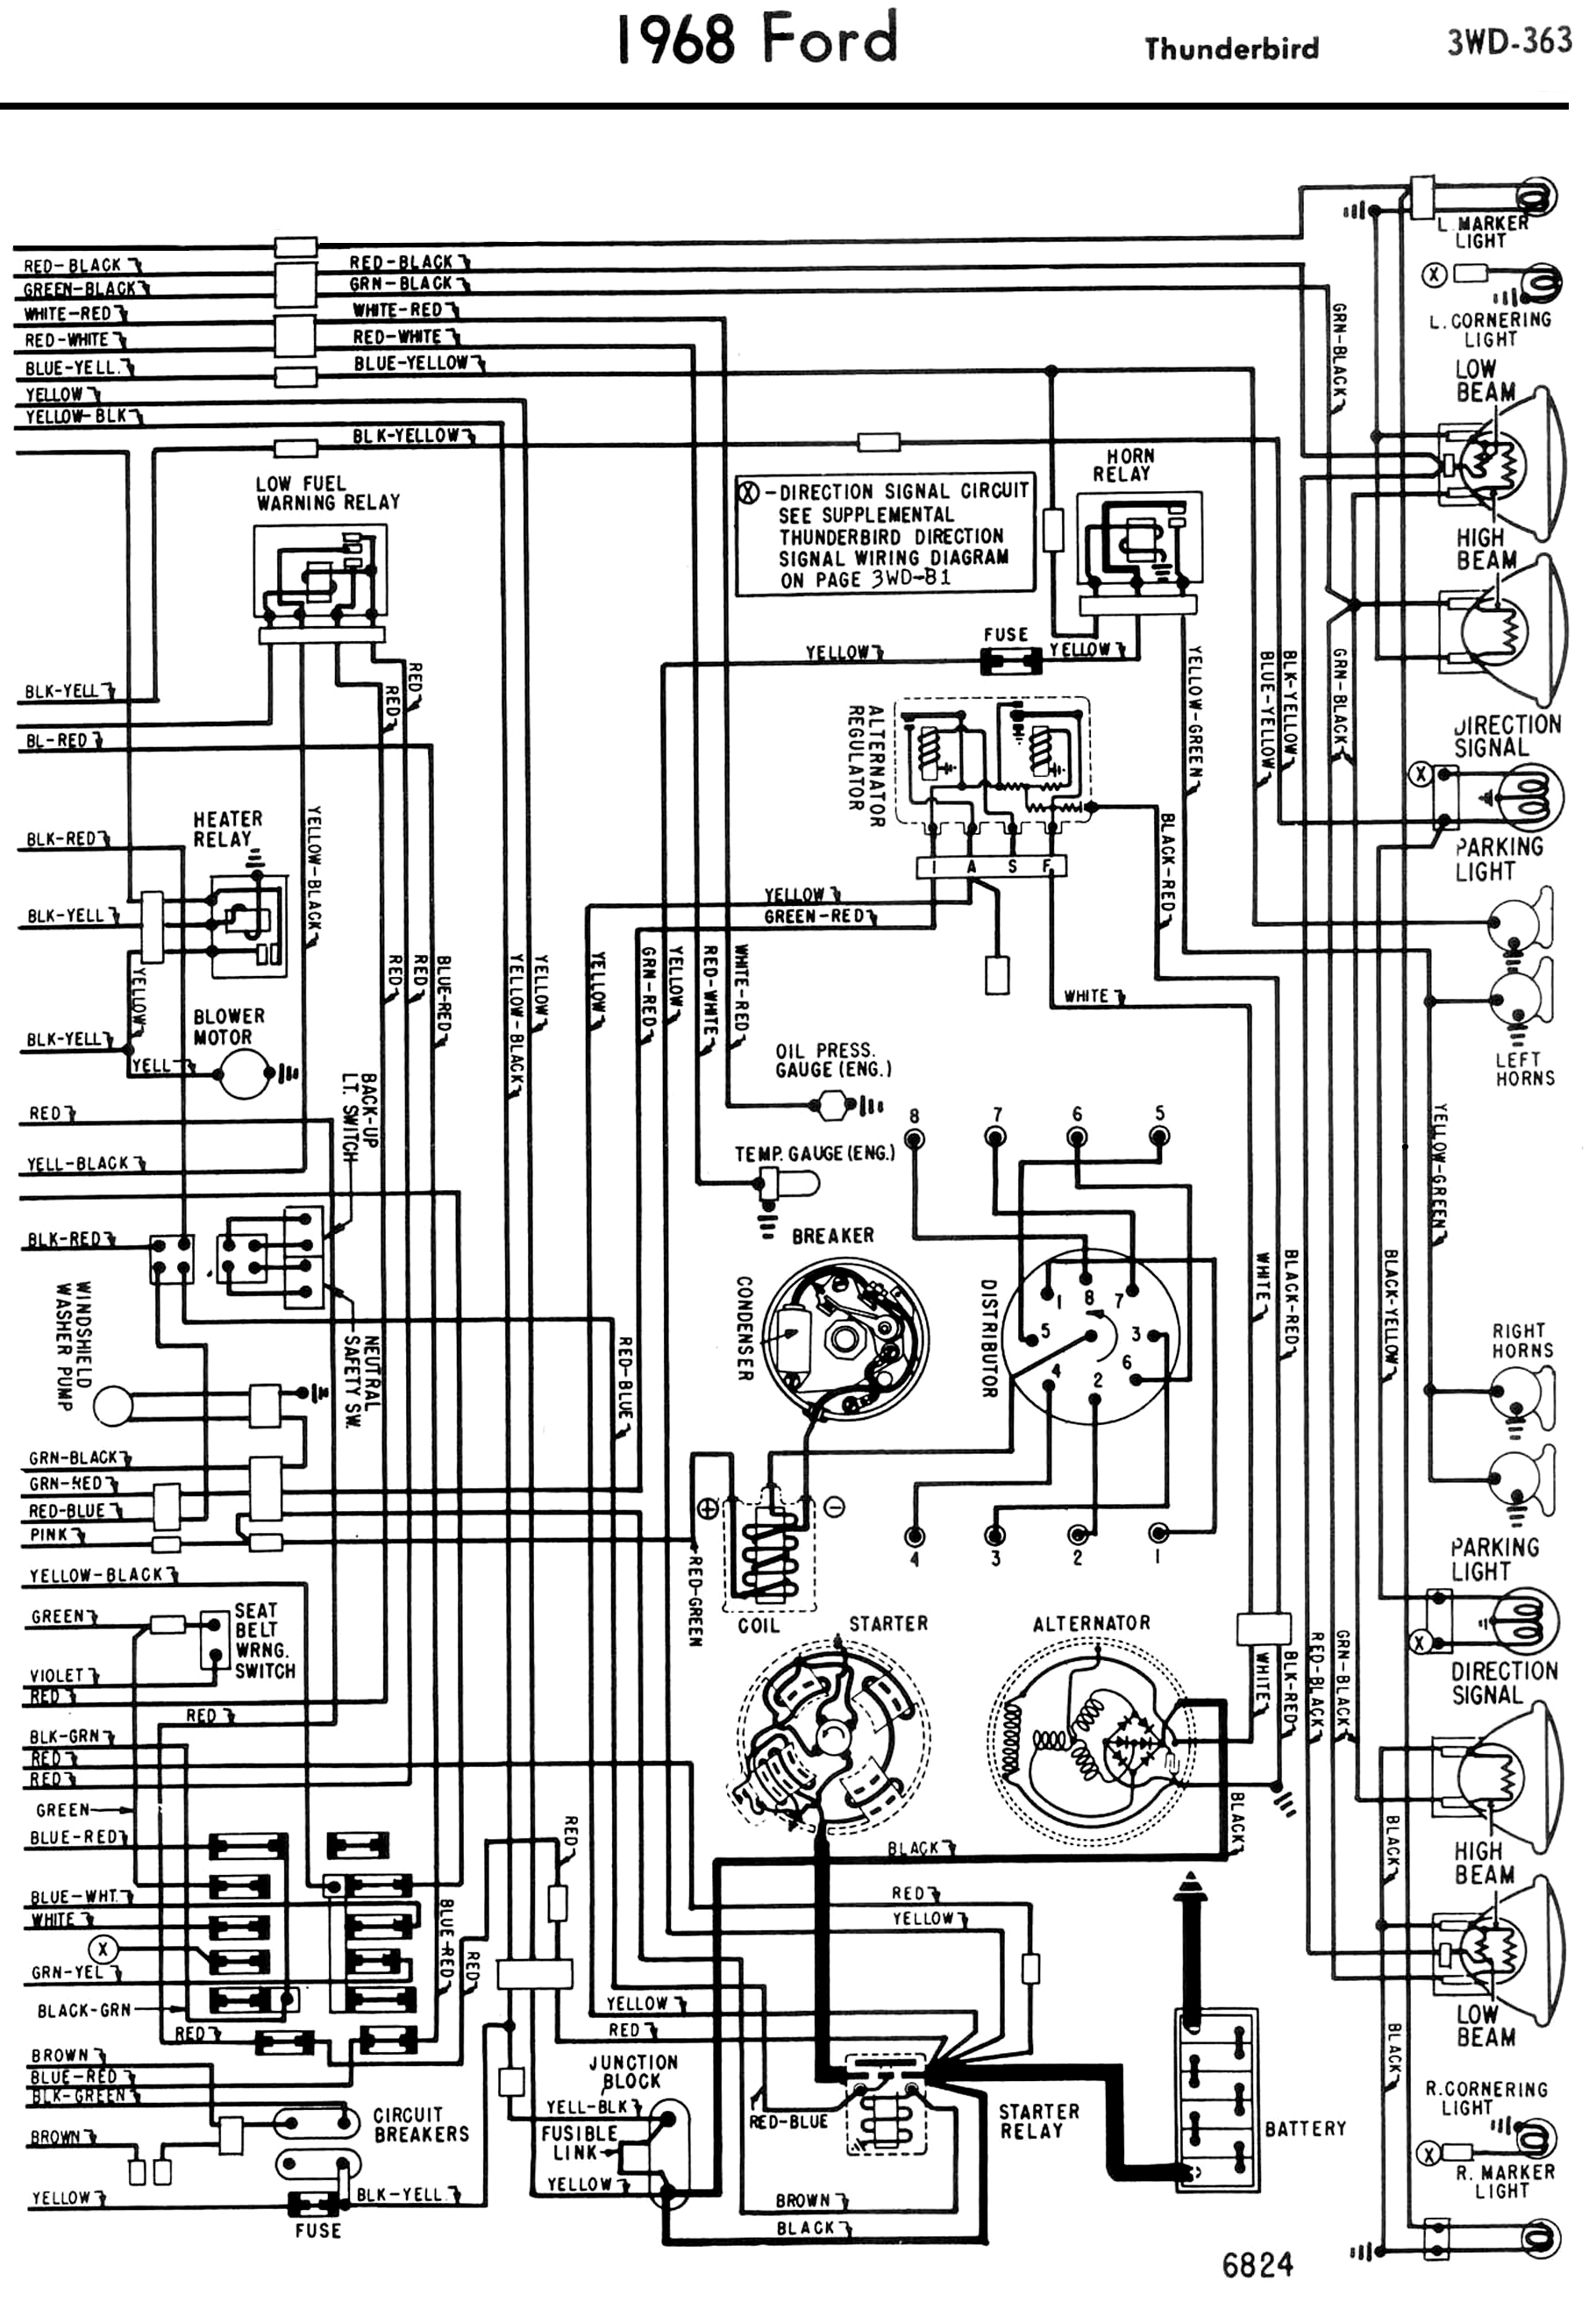 1968 Chevelle Radio Wiring Diagram Library 2003 Chevy 1958 68 Ford Electrical Schematics 1962 Thunderbird Generator Light For